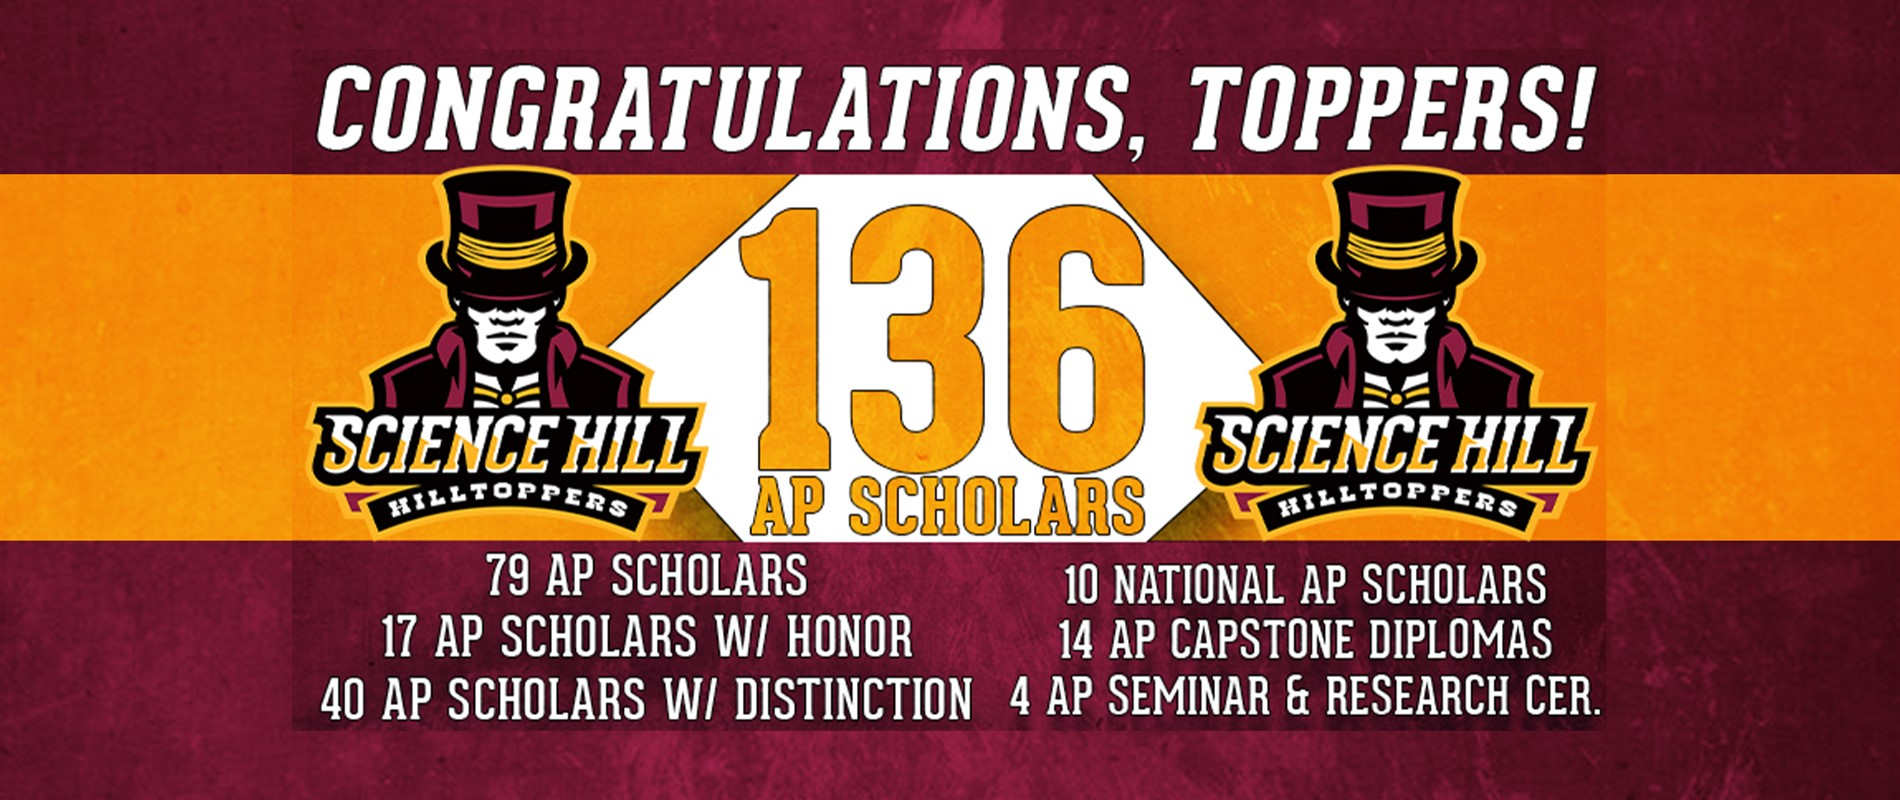 Science Hill has 136 AP Scholars